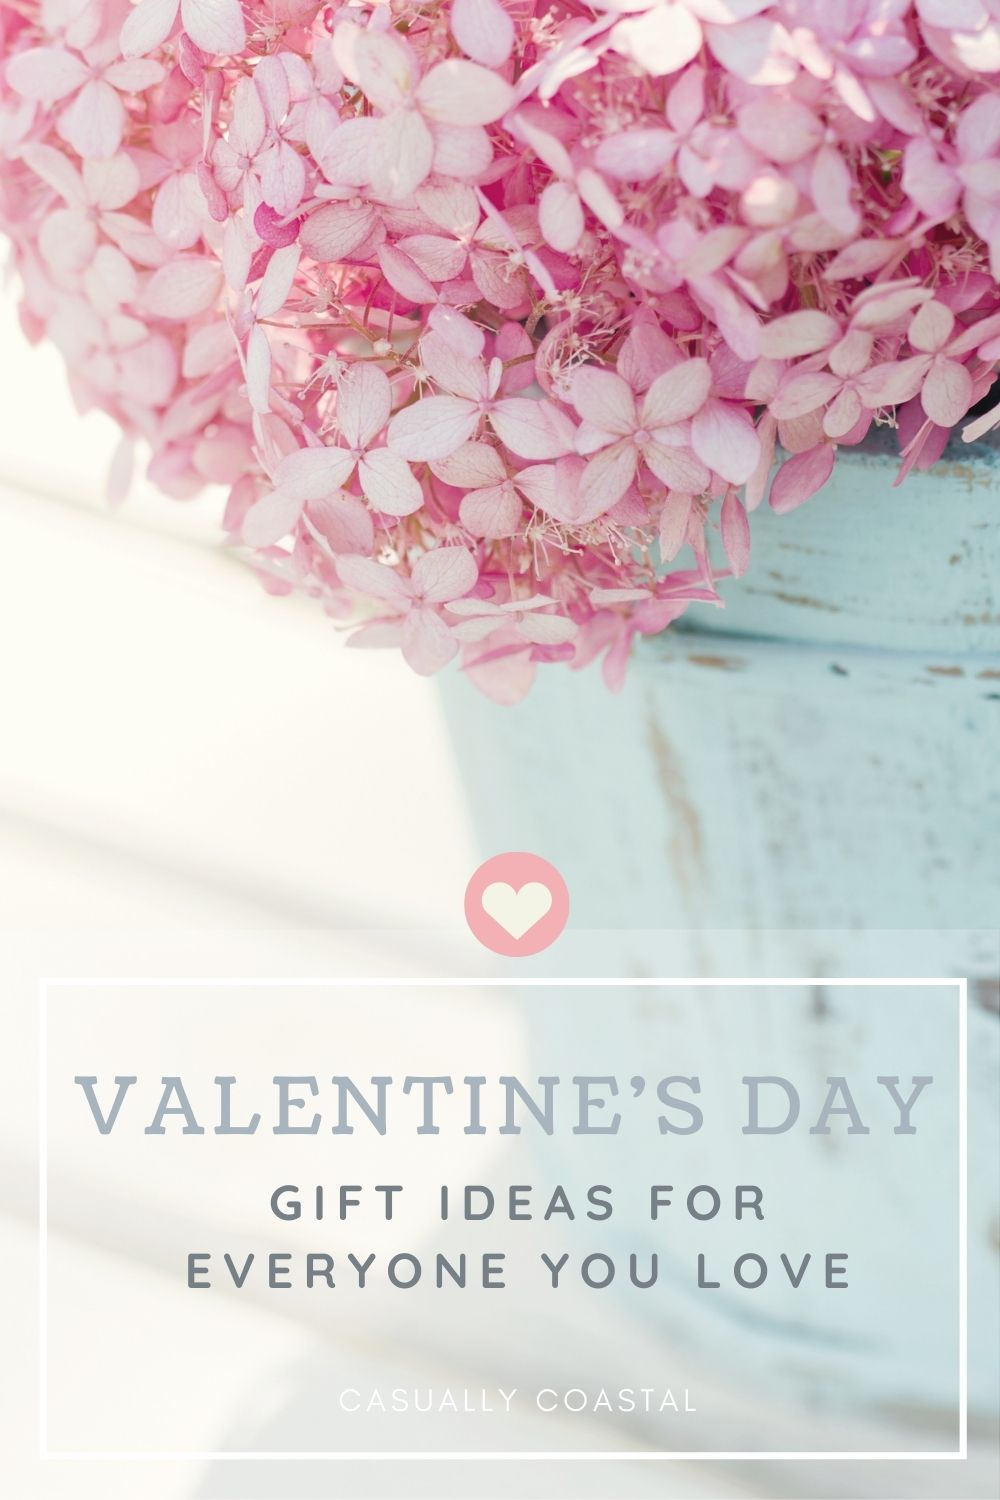 Valentine's Day Gift Ideas For Everyone You Love